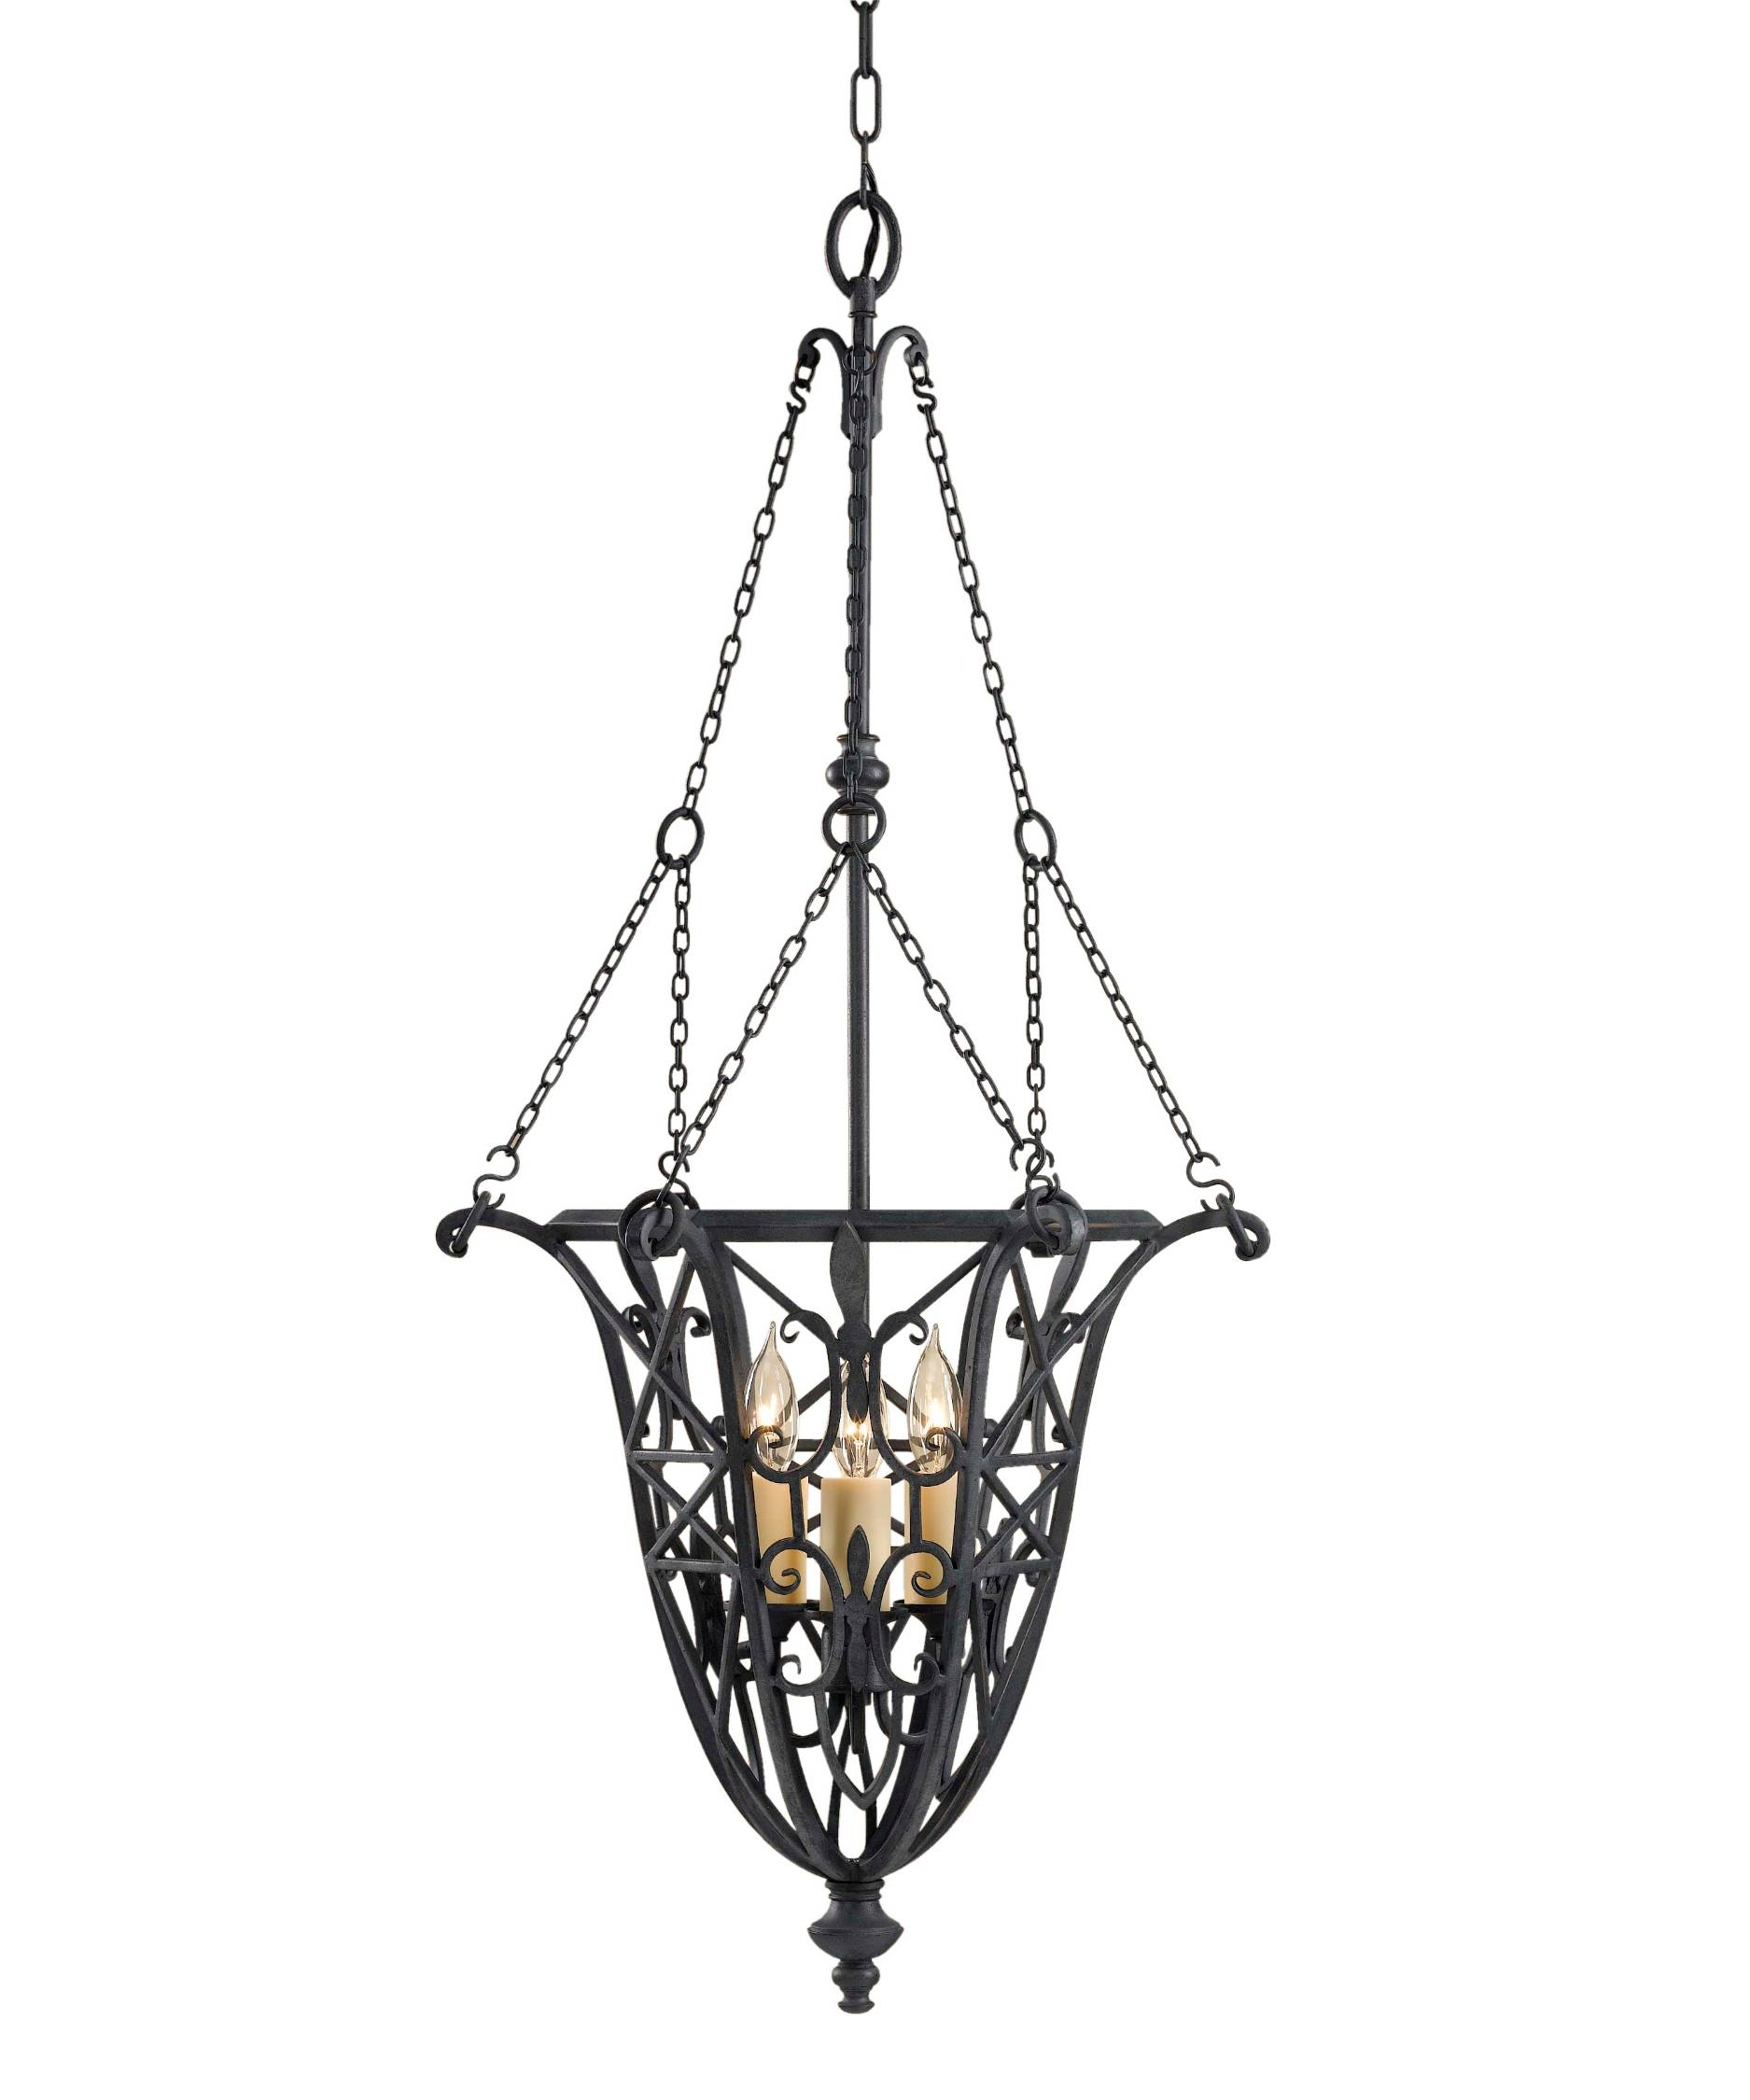 Wrought Iron Mini Pendant Lights And Lighting 2017 Images pertaining to Wrought Iron Lights Pendants (Image 13 of 15)